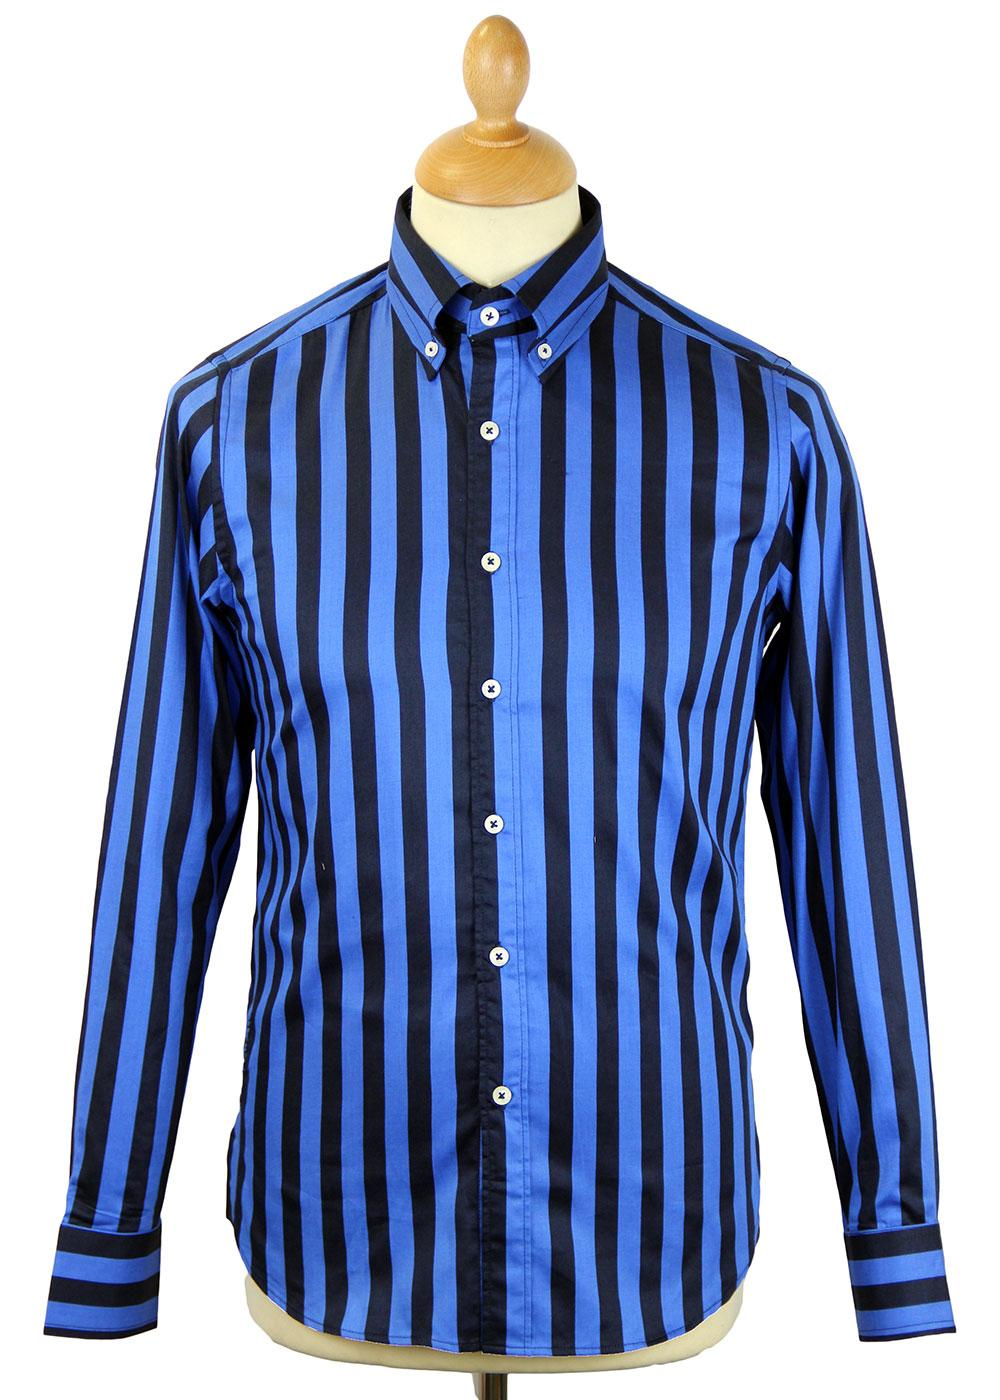 Maddock DAVID WATTS Retro Mod Block Stripe Shirt